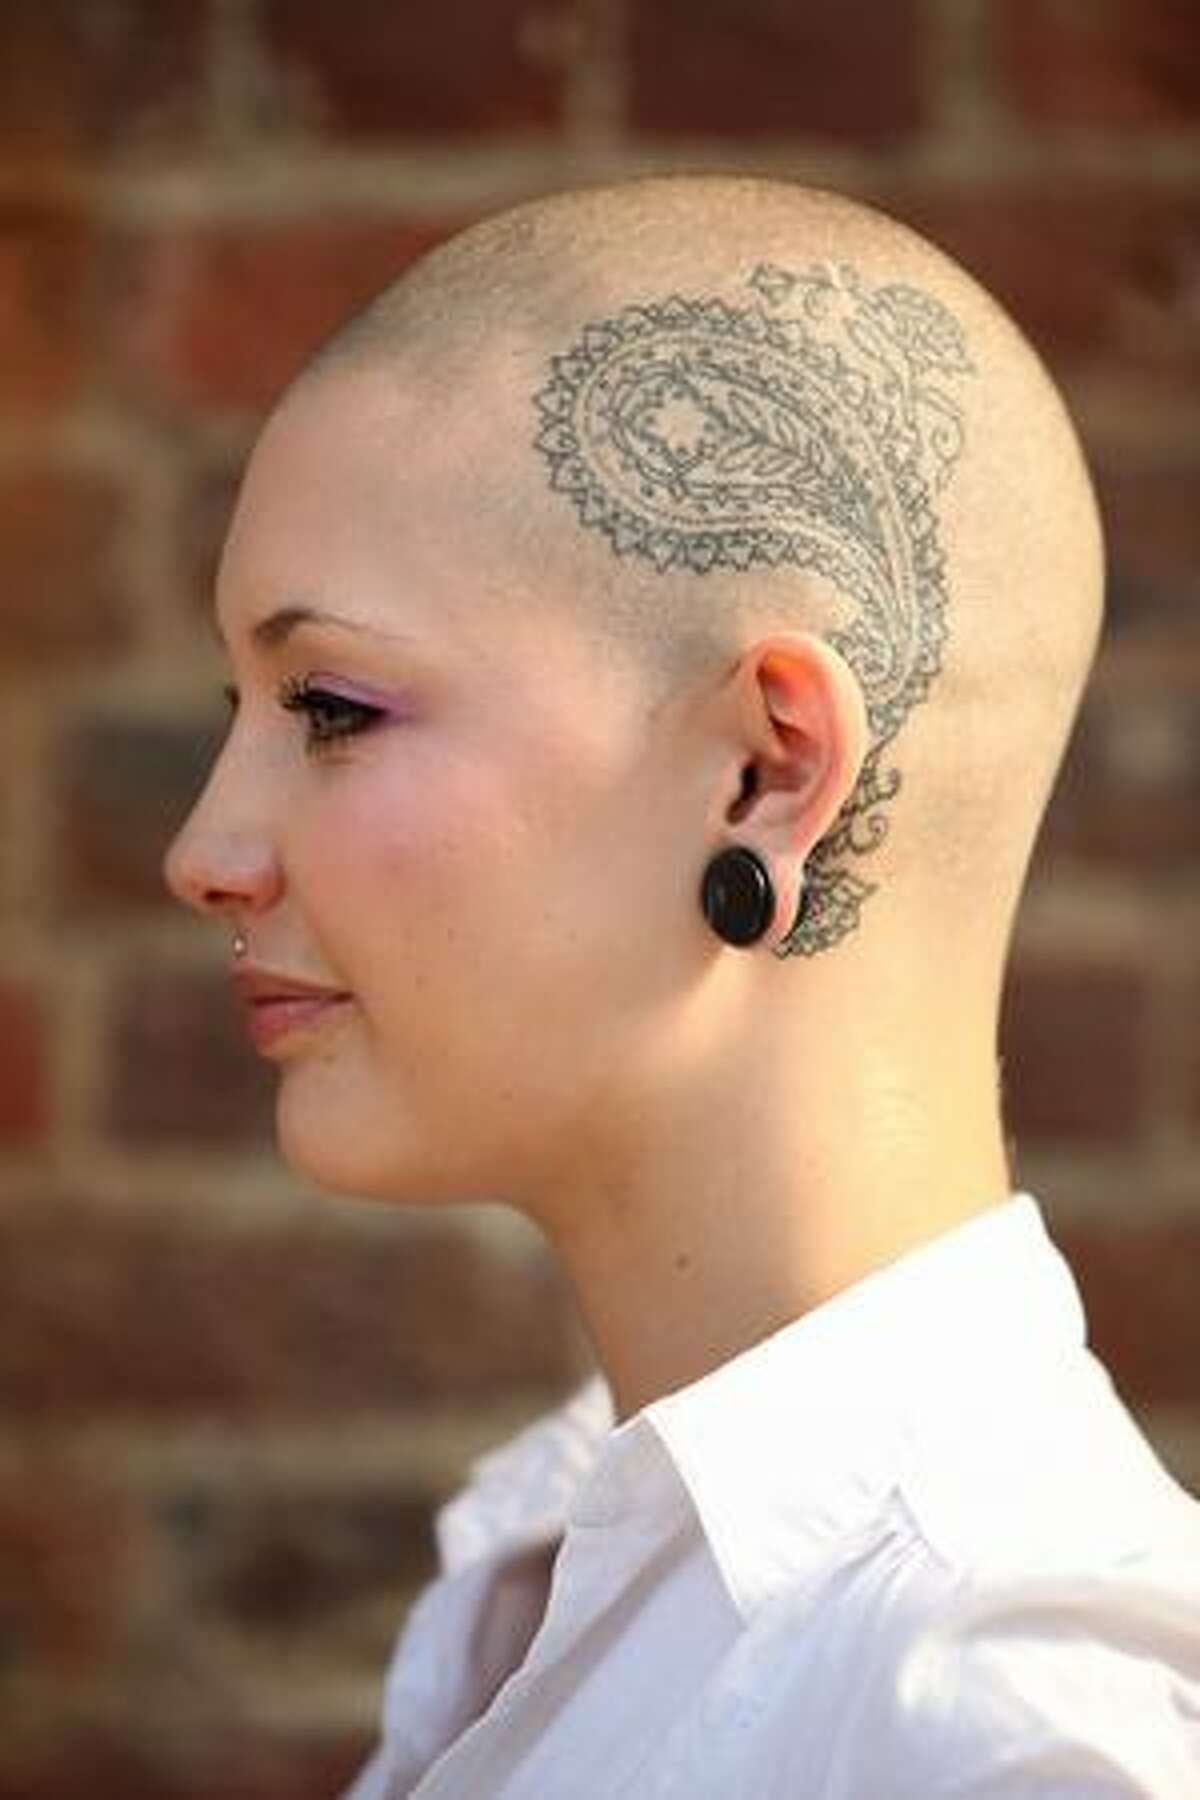 Tattoo enthusiast Camilla Caney shows off her tattooed head on the opening day of the fifth London Tattoo Convention in London, England.